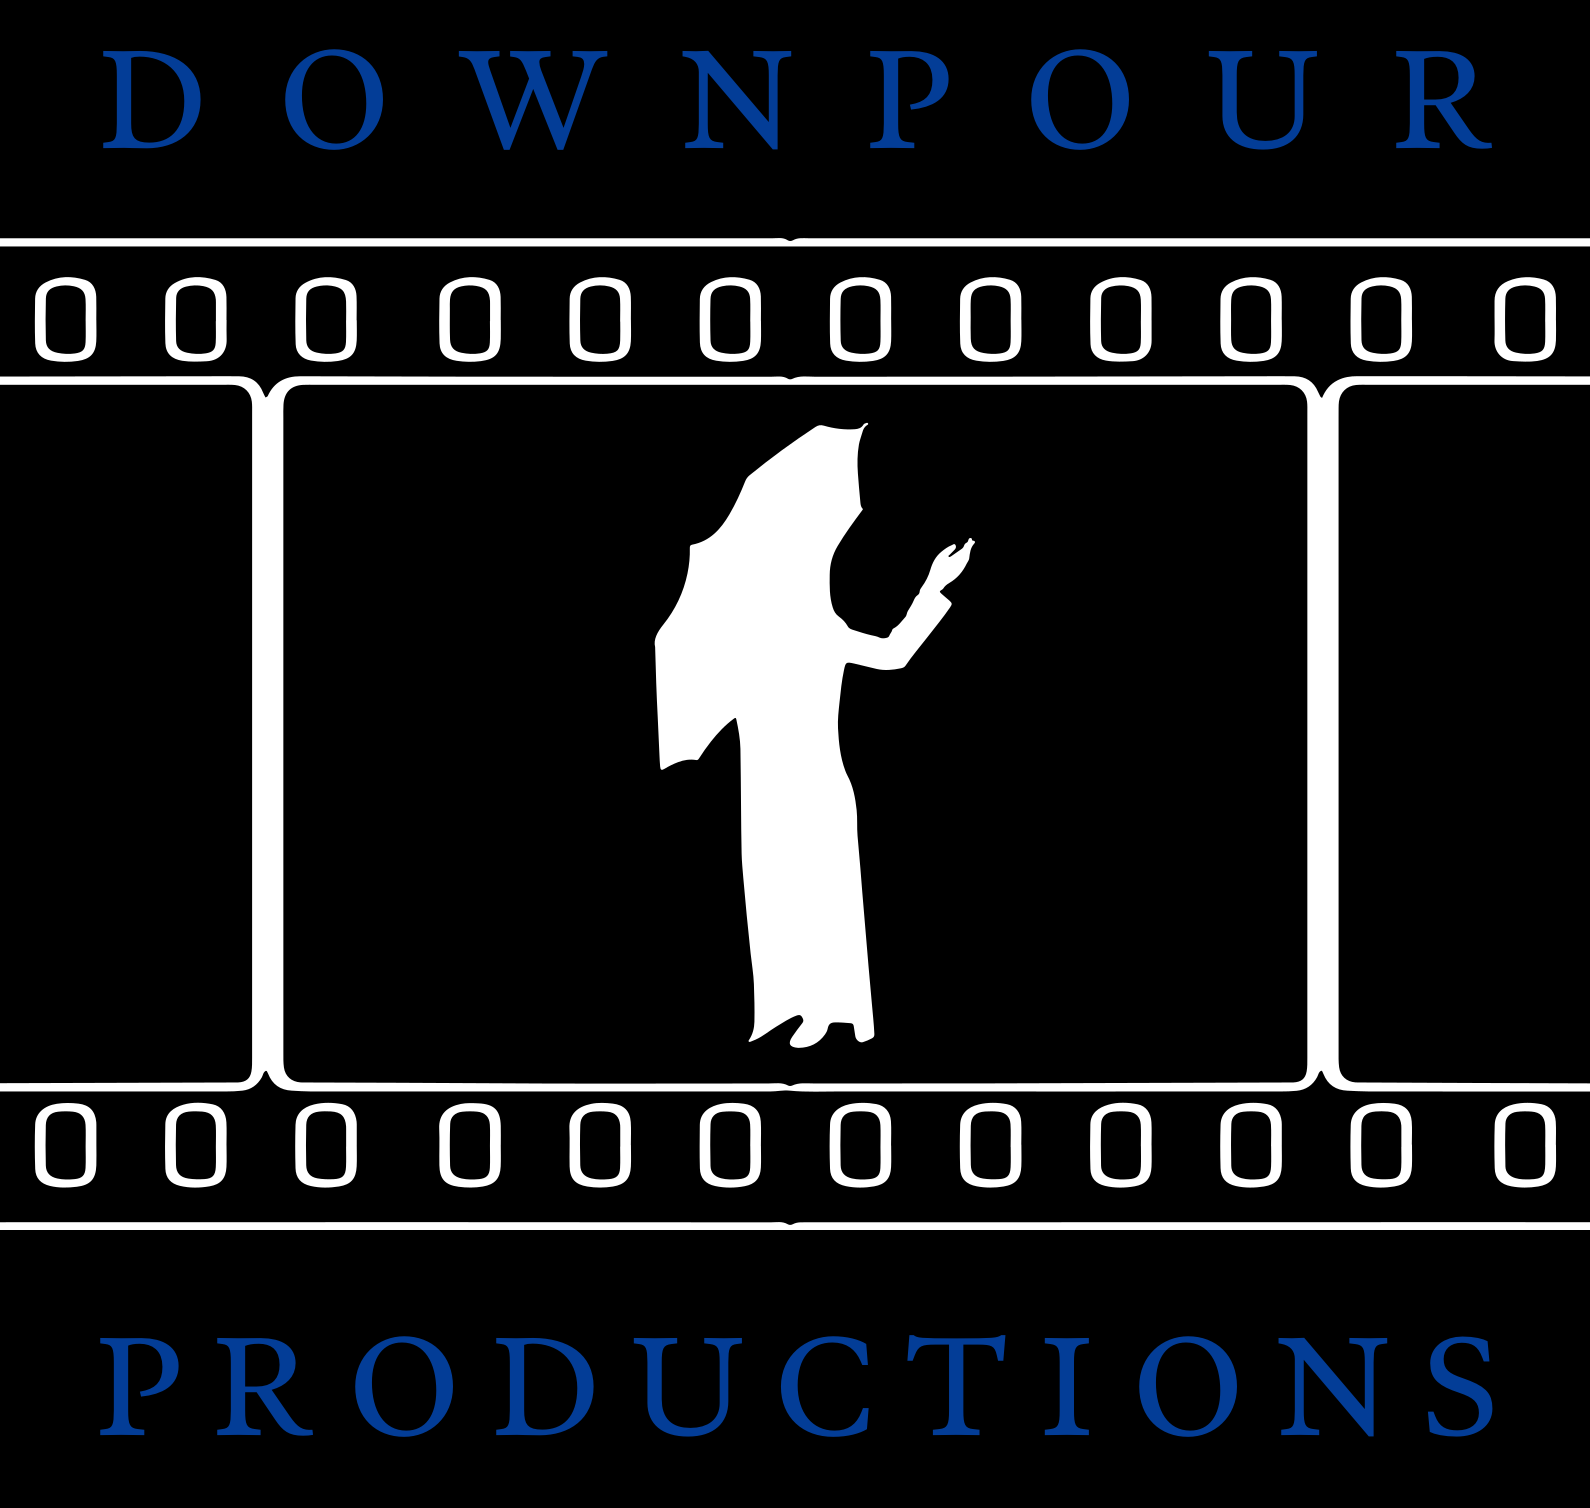 Downpour Productions - Your video production solution